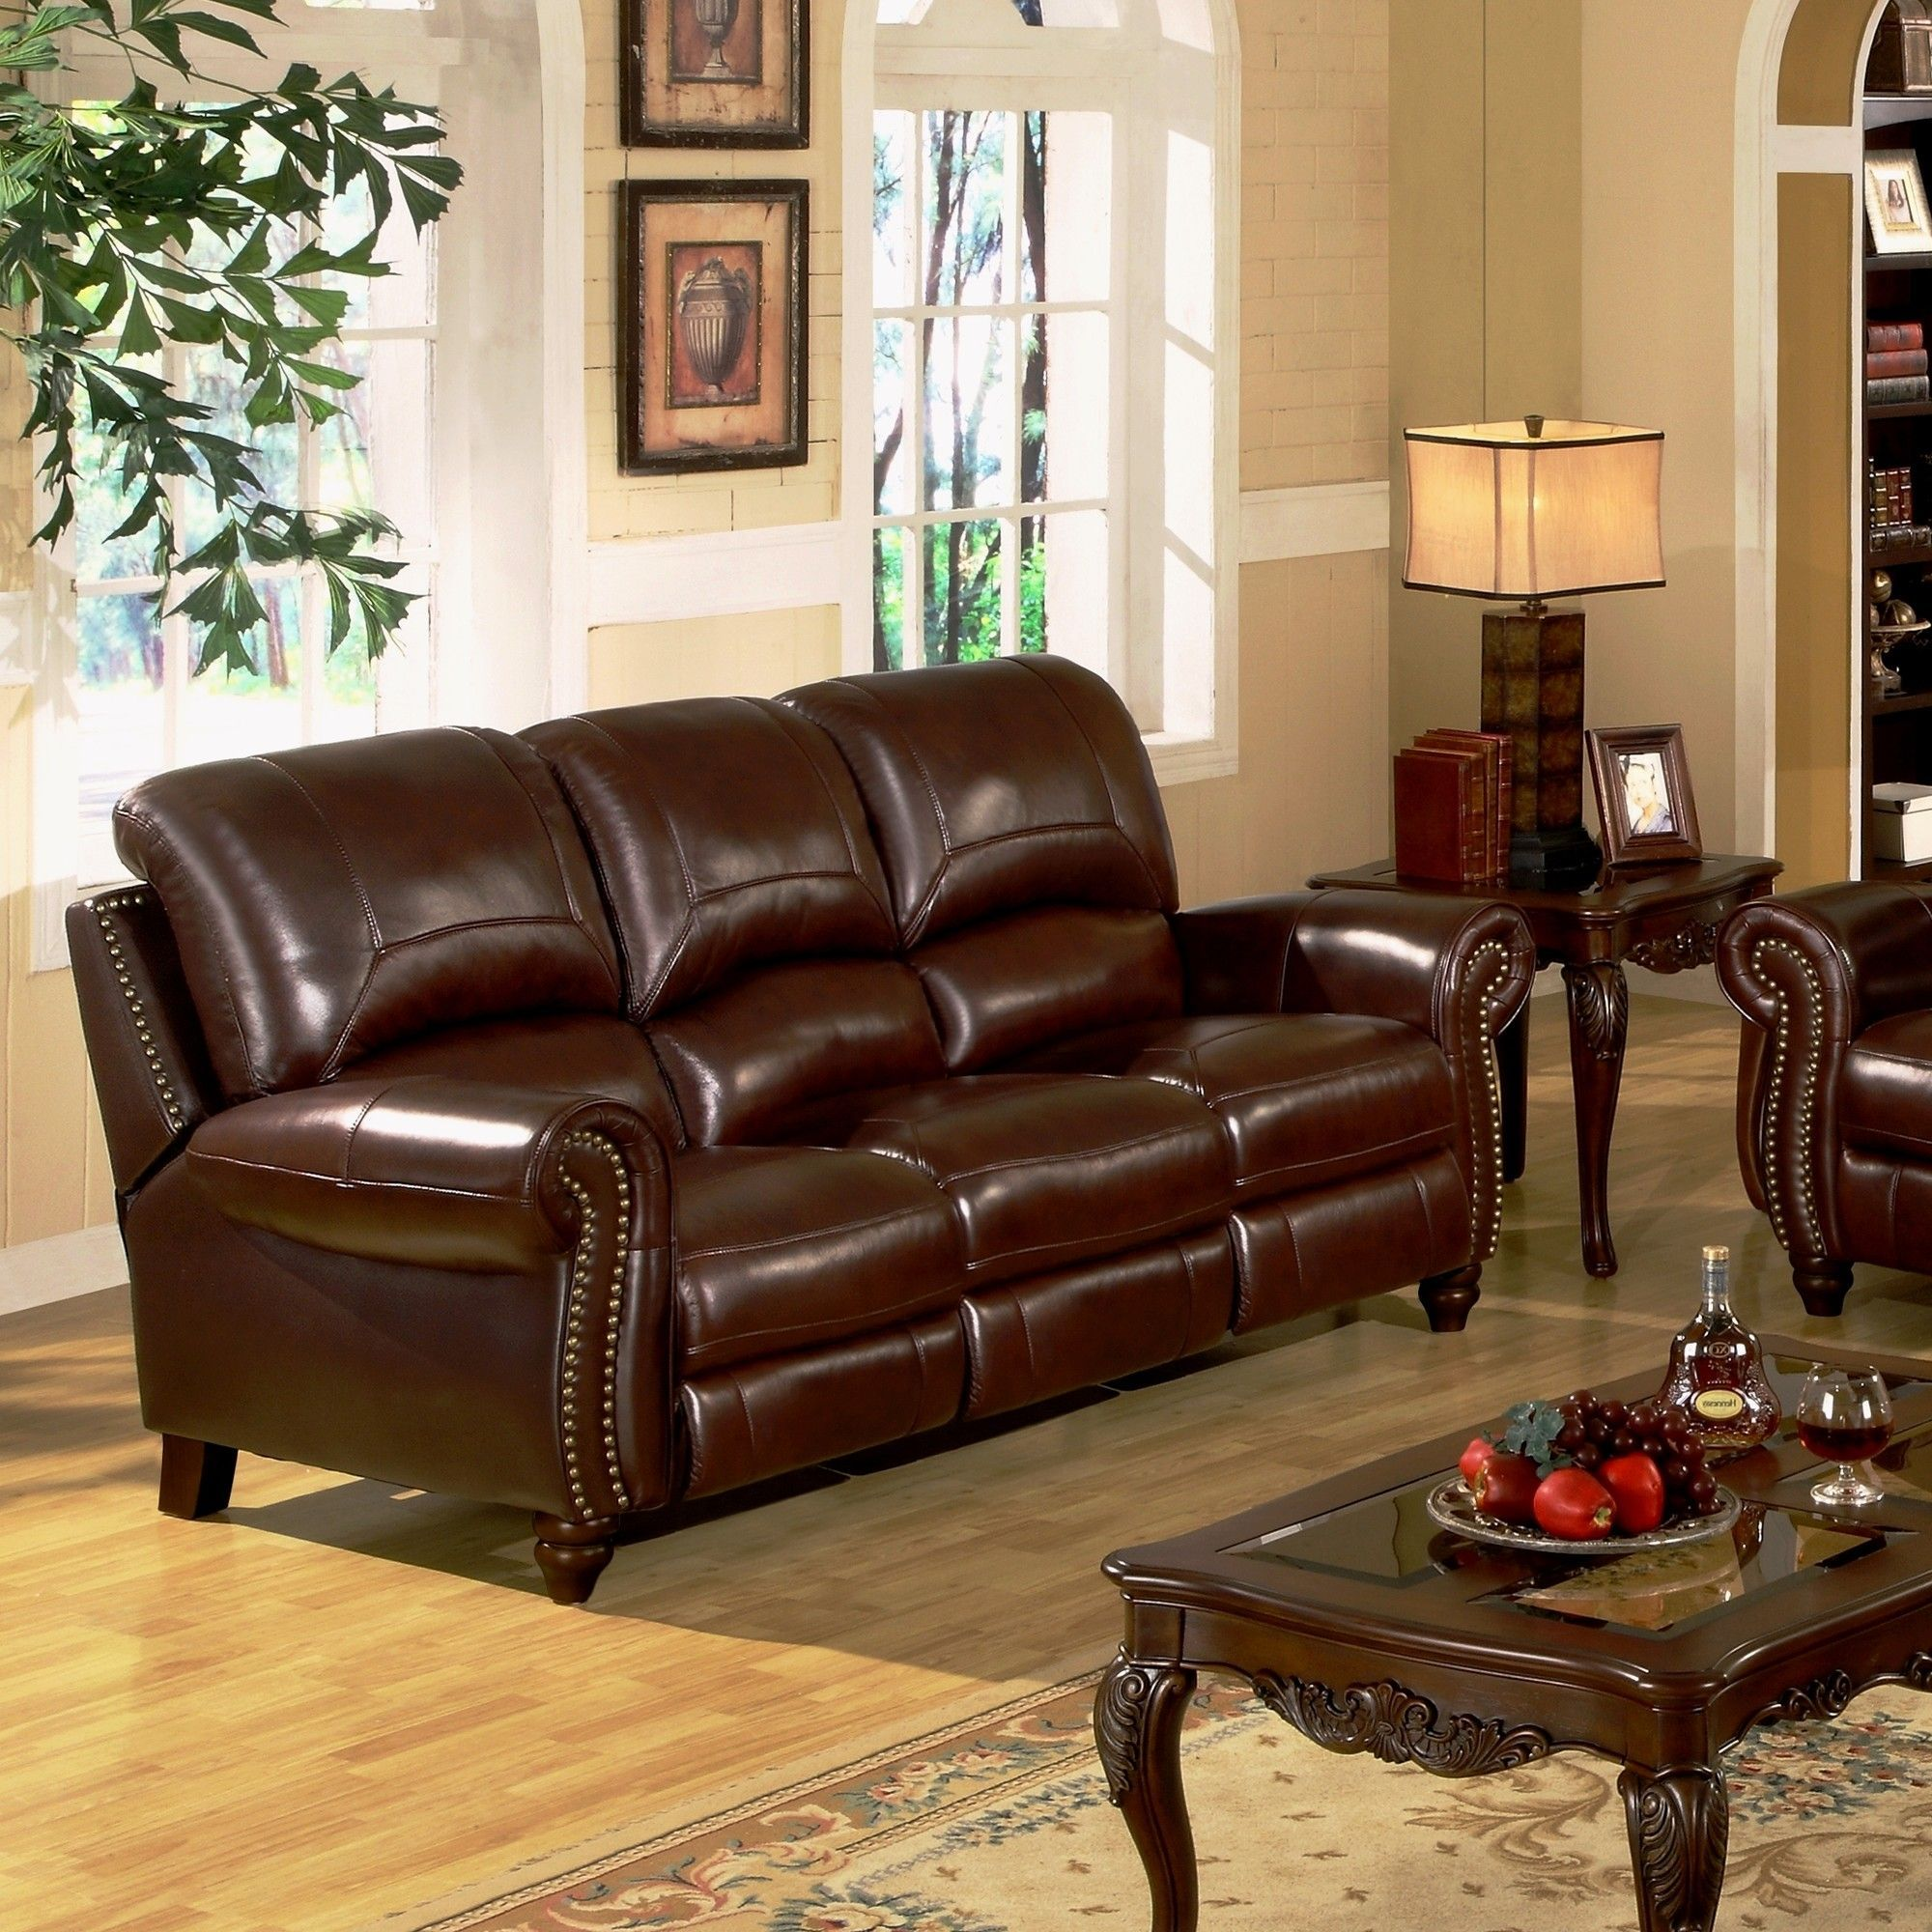 Abbyson Living Charlotte Leather Reclining Sofa & Reviews Classy Living Room Recliners Decorating Design